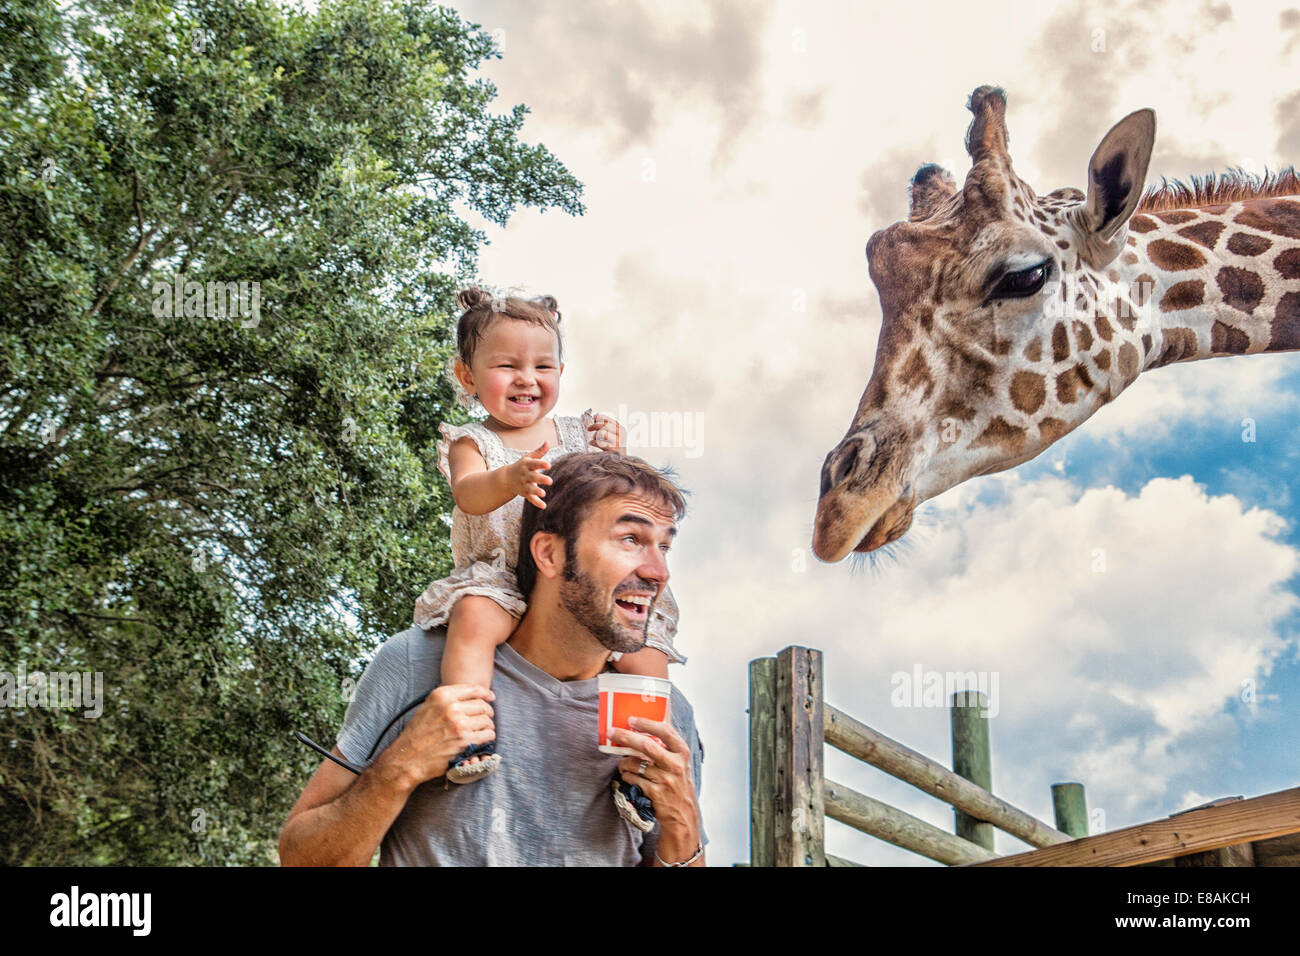 Giggling baby girl on fathers shoulders feeding giraffe at zoo - Stock Image